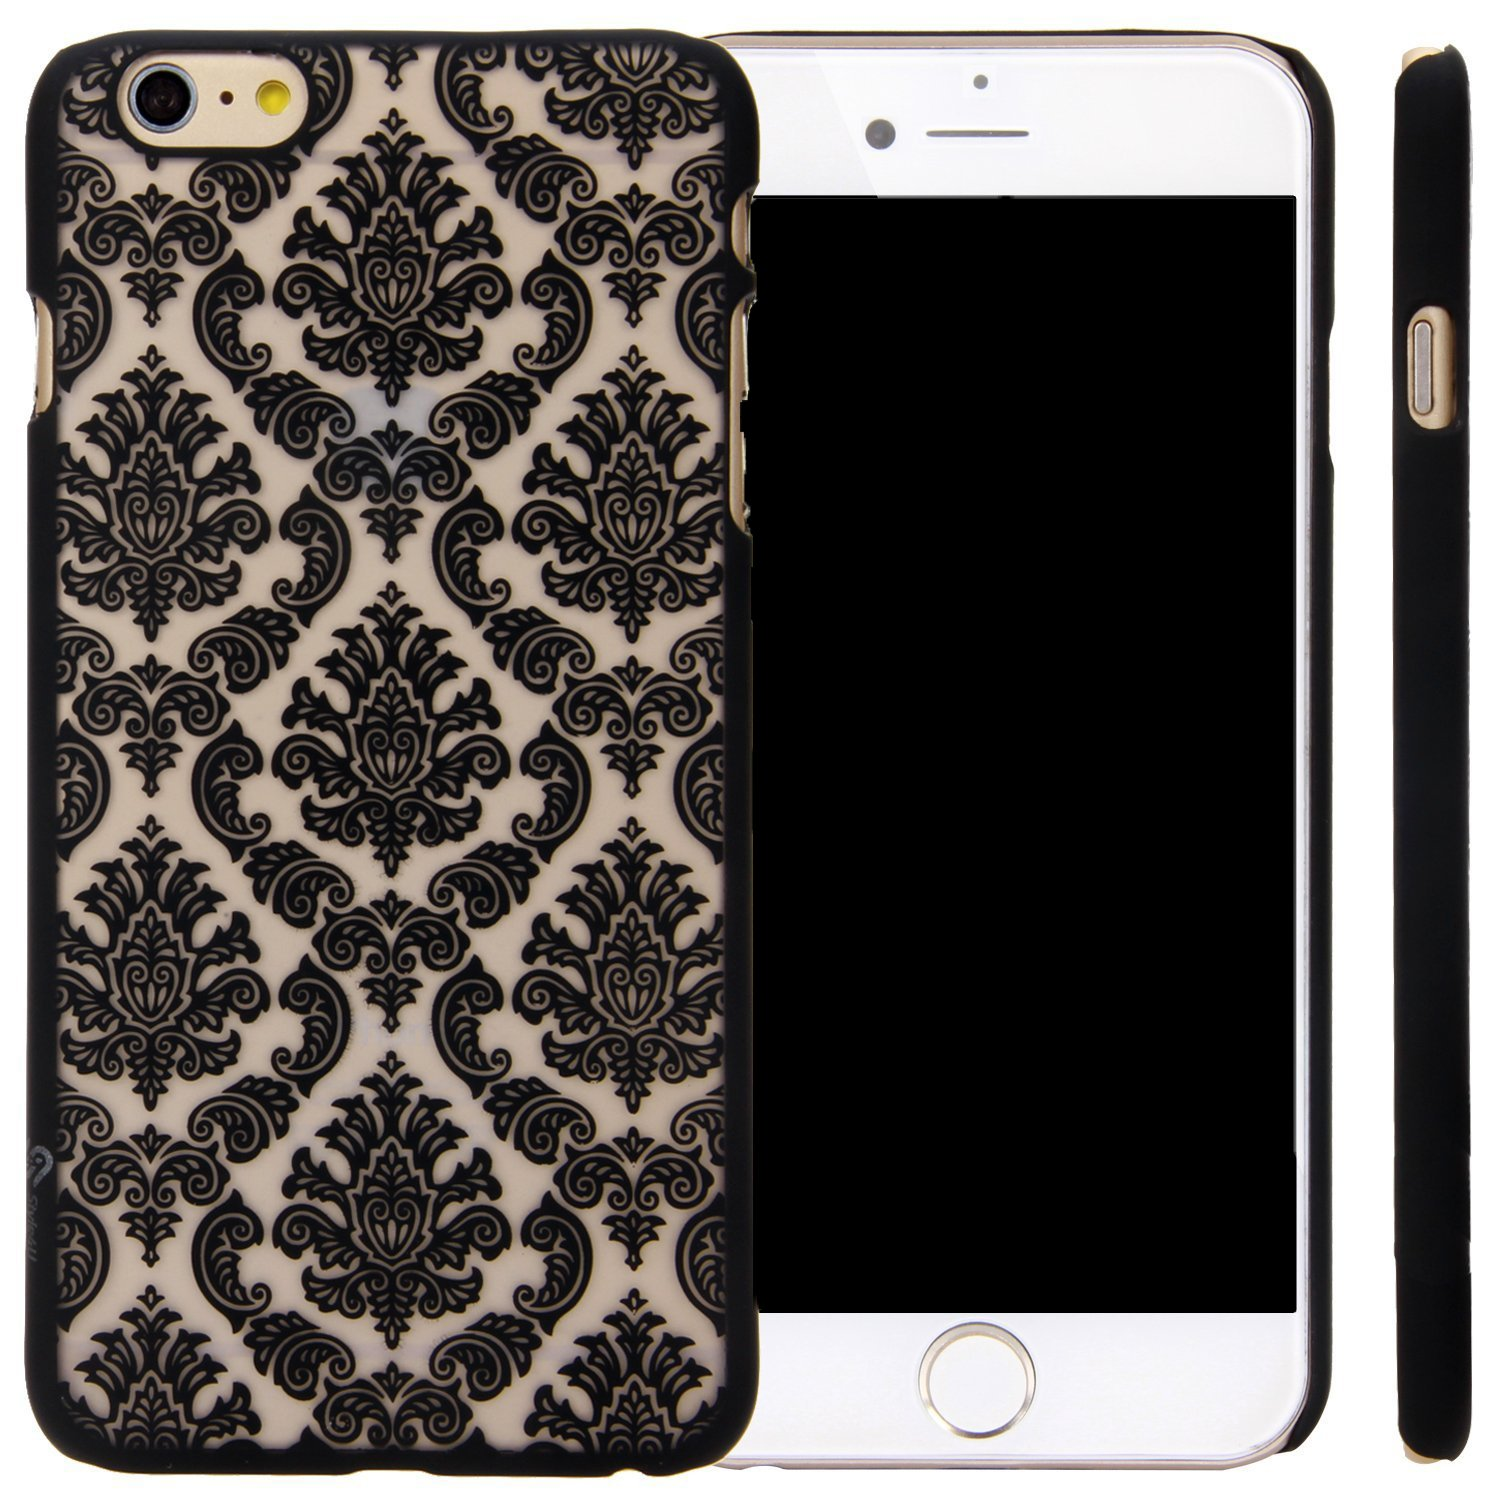 Damask & Vintage Pattern PC Hard Case for Apple iPhone 6 & 6S 4.7